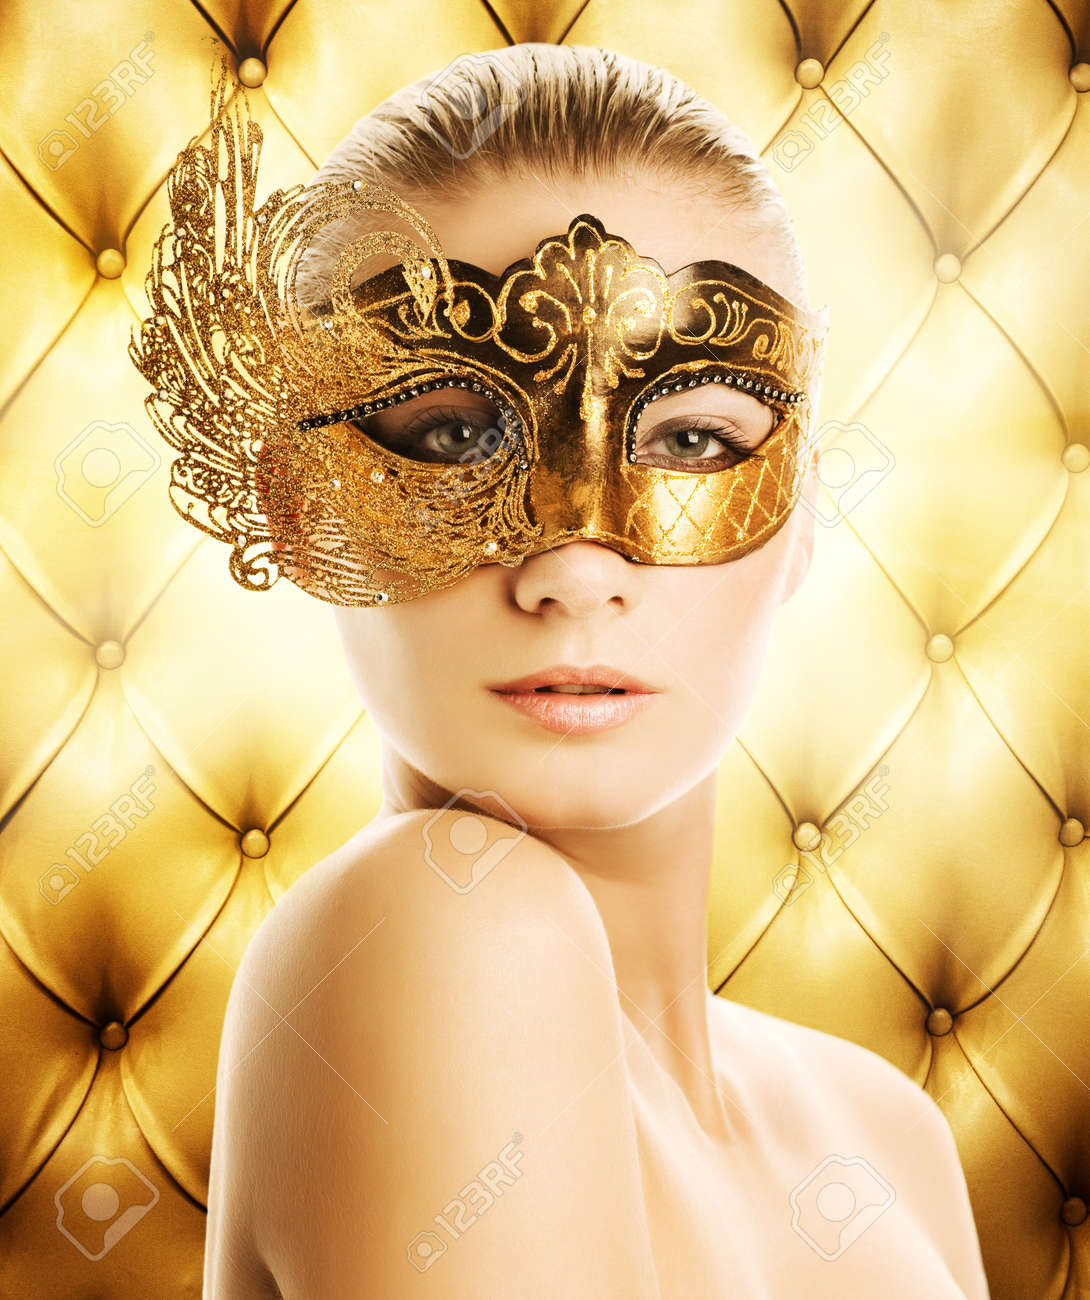 Beautiful woman in carnival mask over abstract background Stock Photo - 3942115